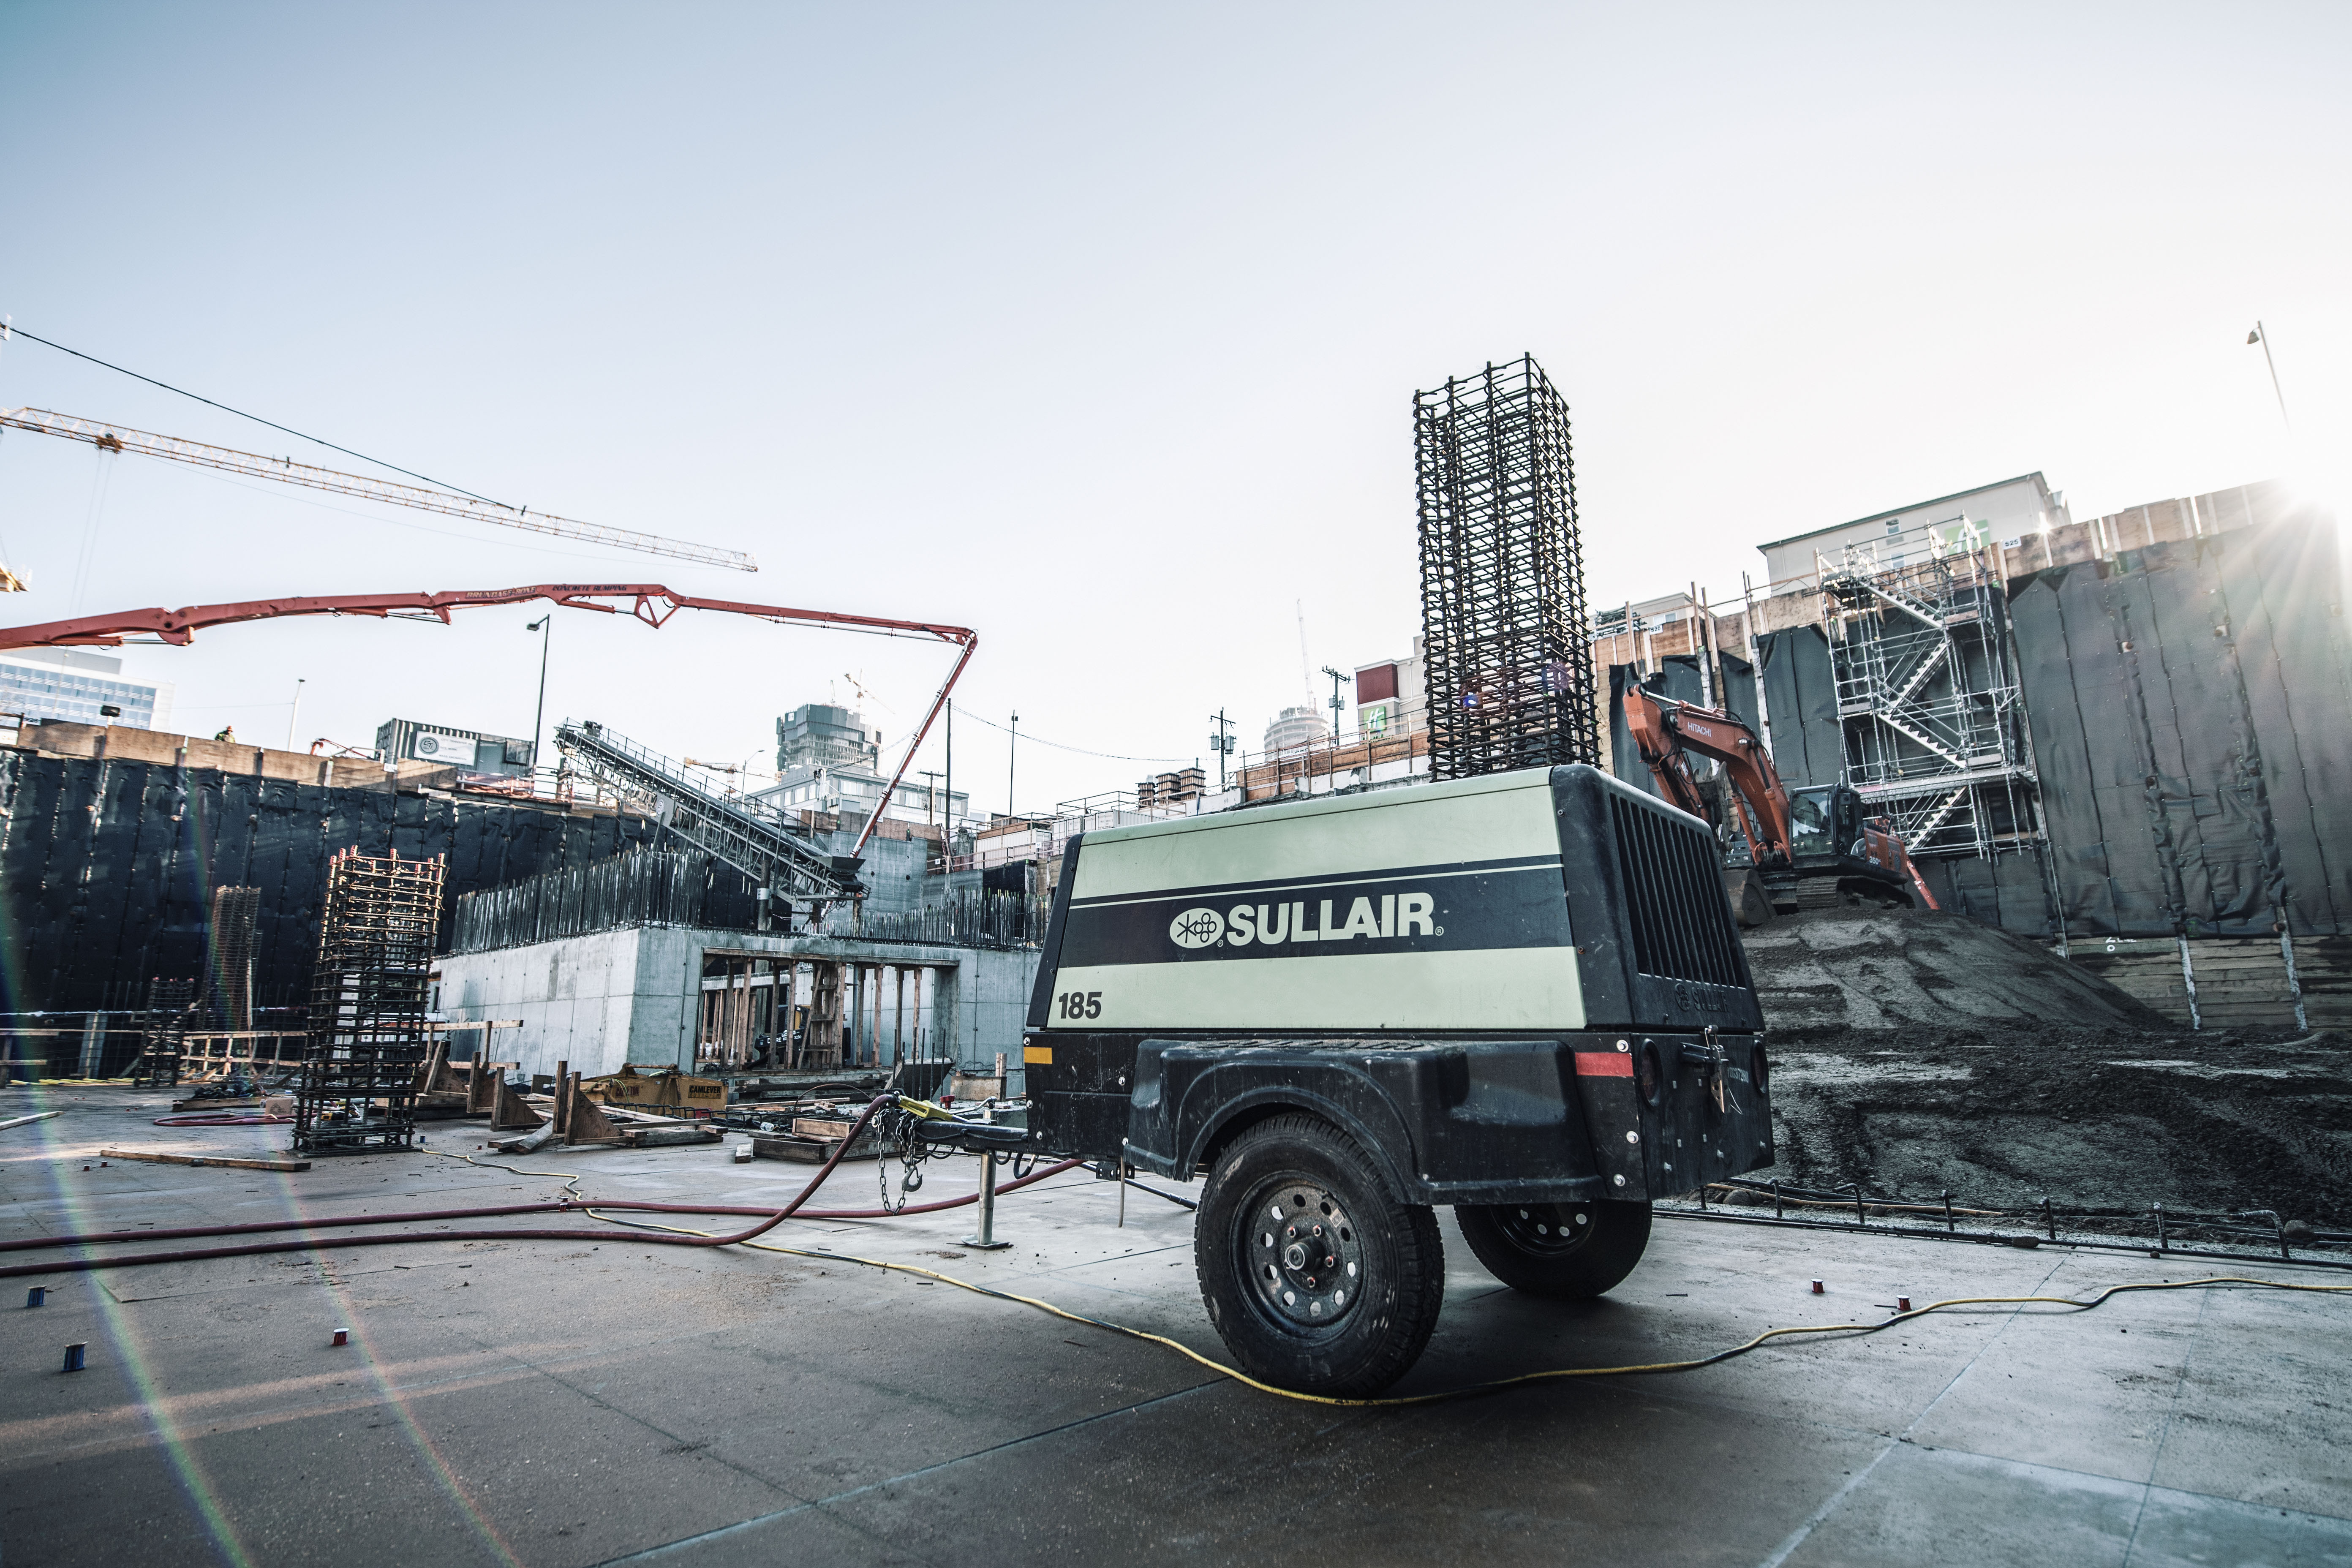 Sullair 185 cfm portable compressor on a jobsite in Seattle